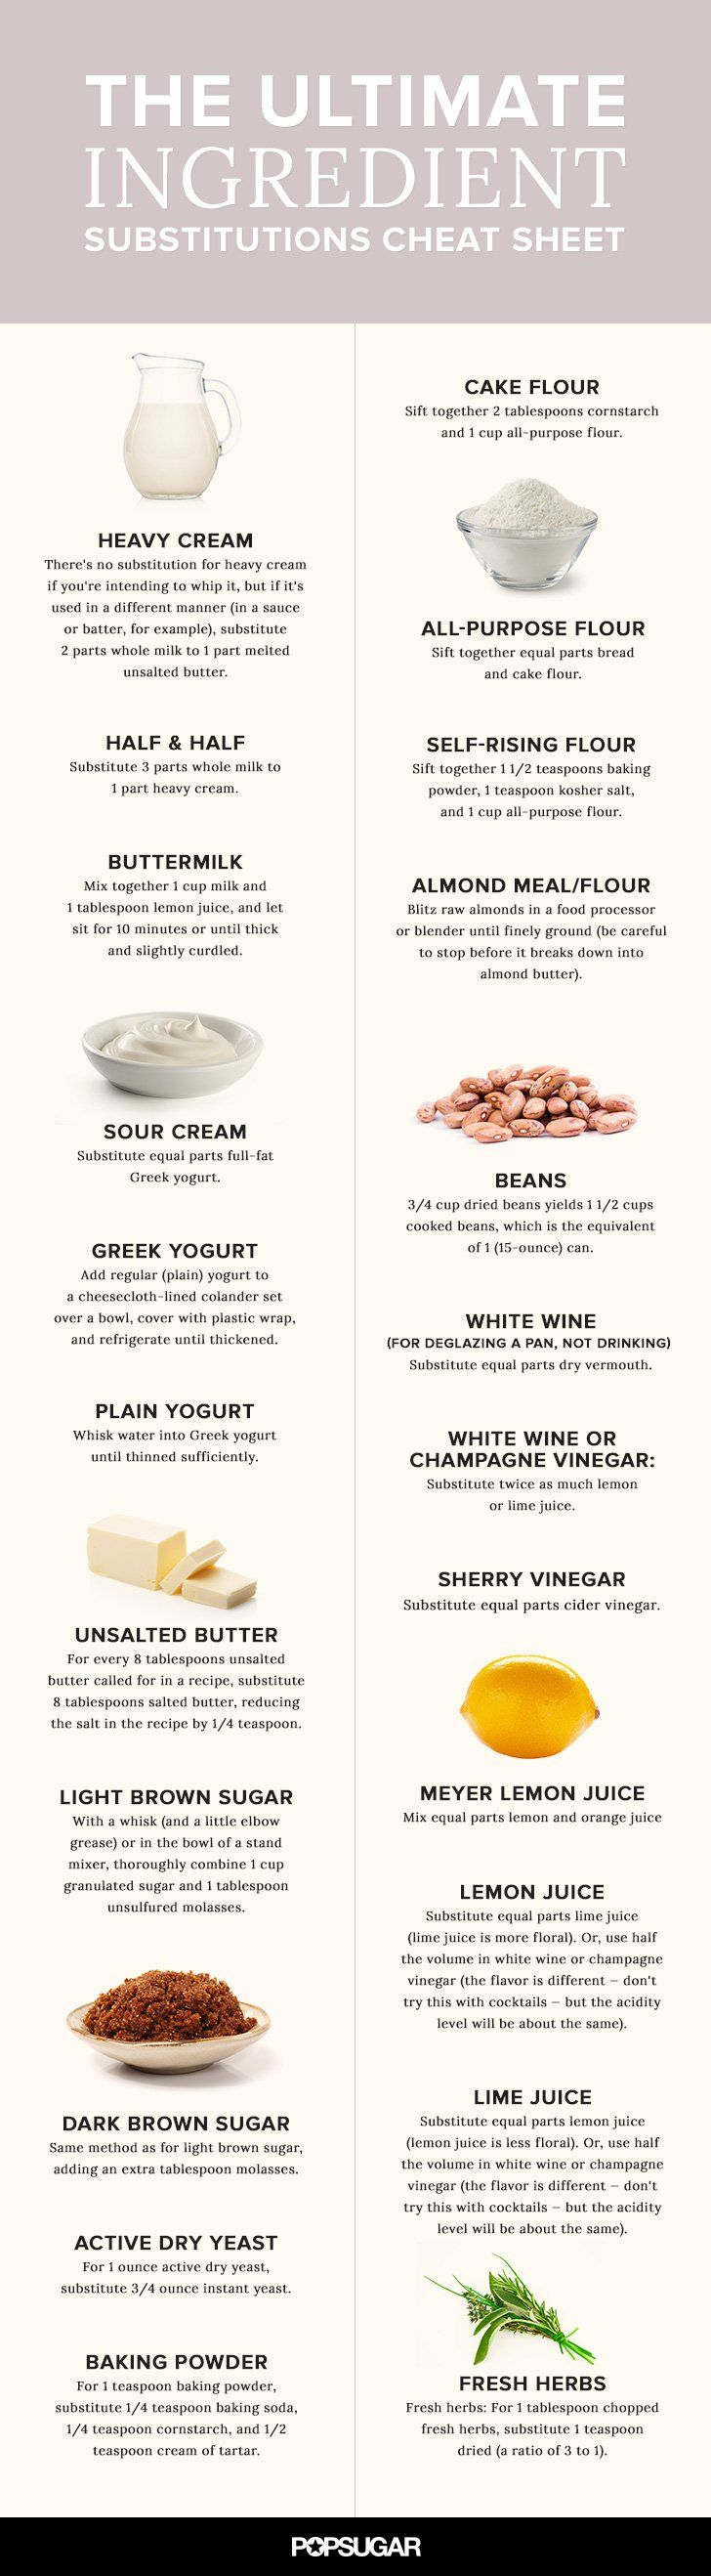 Your Ultimate Ingredient Substitutions Guide